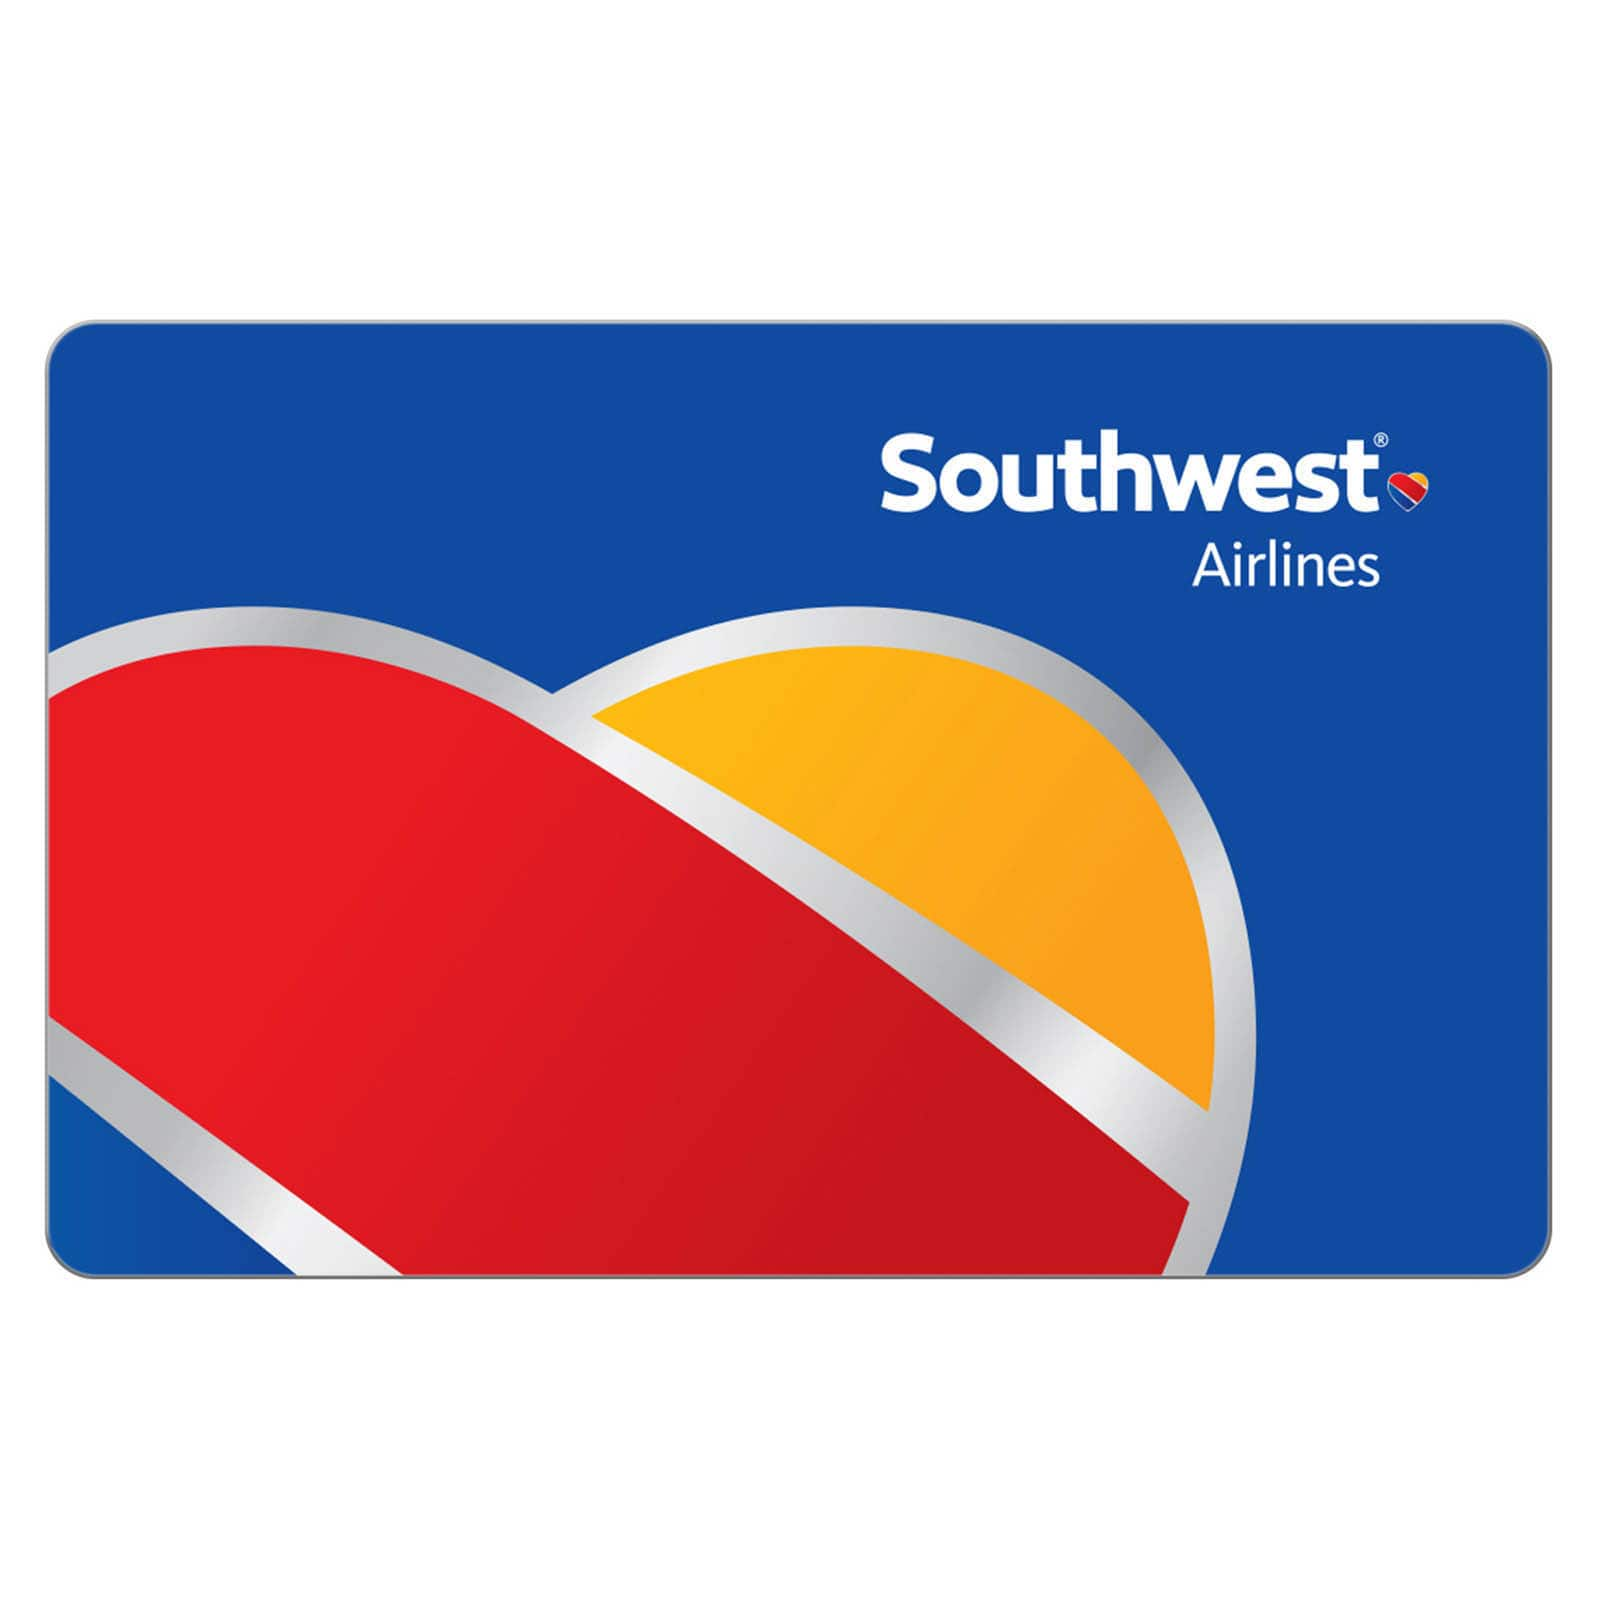 $200 Southwest Airlines Gift Card in $174.99 (12.5% off) - Free Shipping - BJs Membership required - Limit 3 per member - Online only